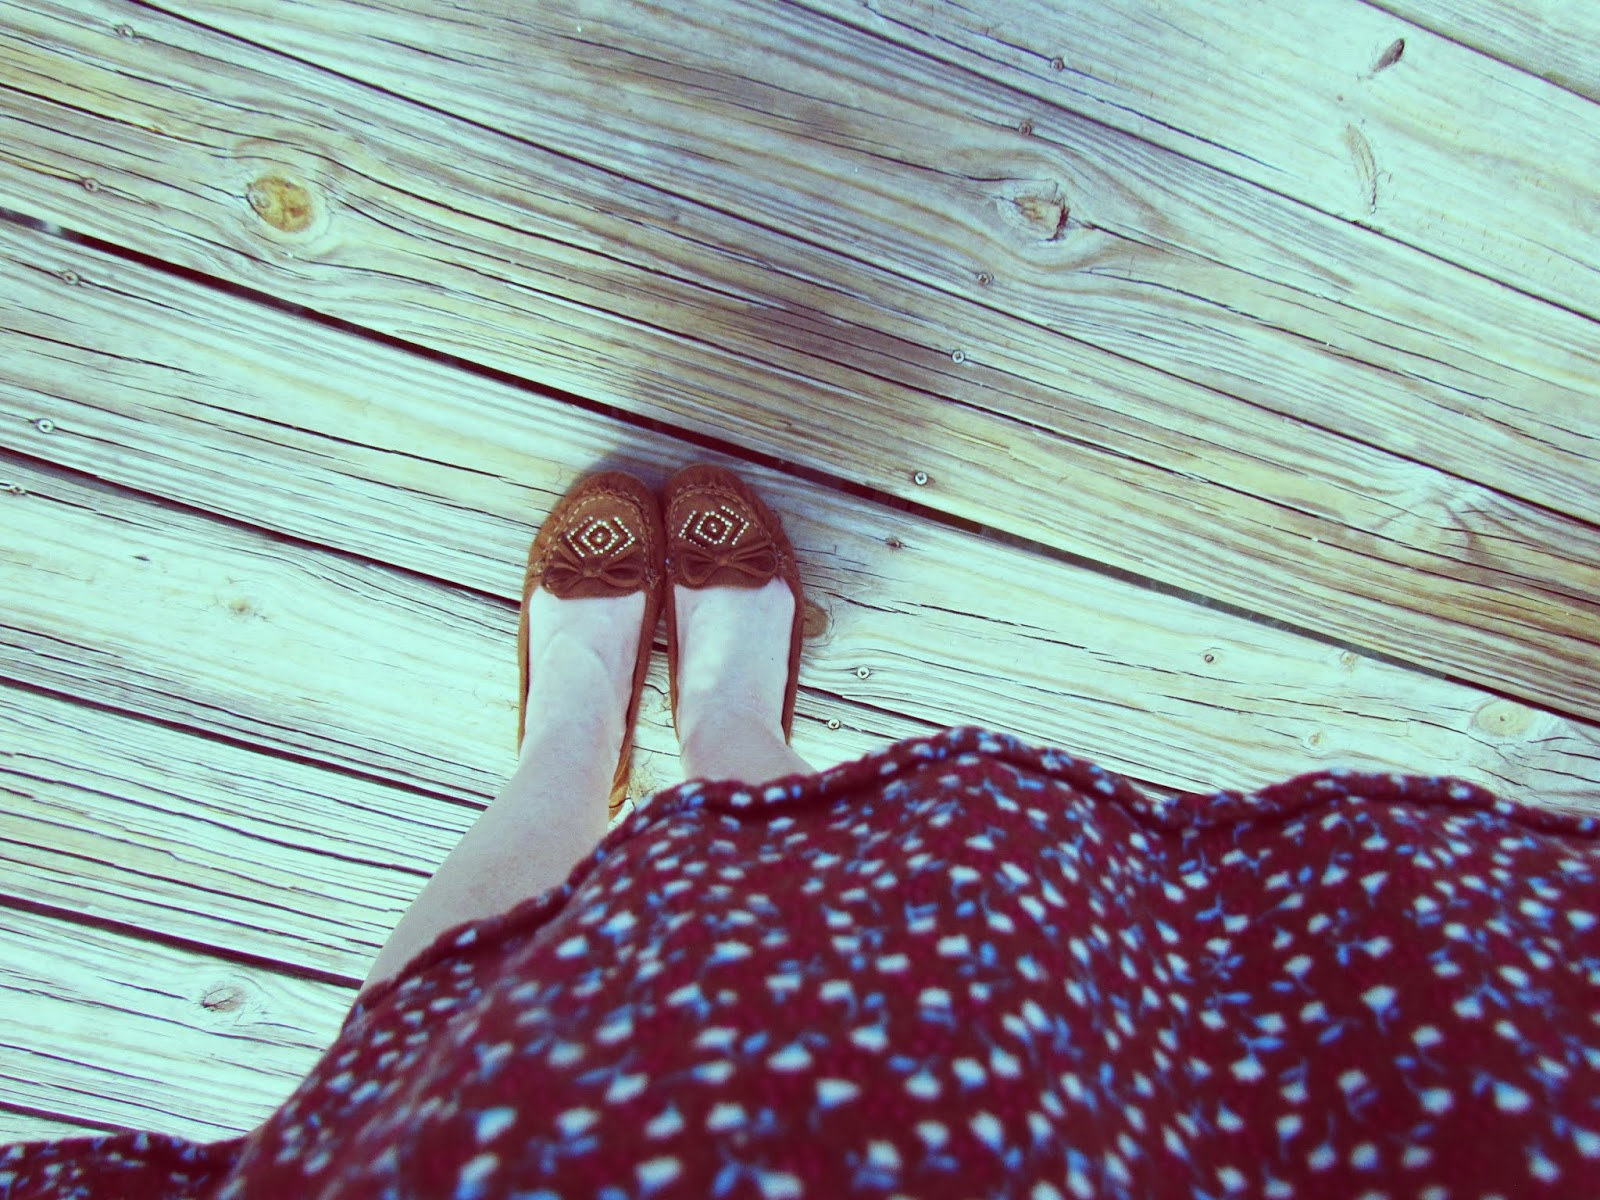 a woman wearing a brown flower-patterned dress and brown moccasins at the pier in Florida